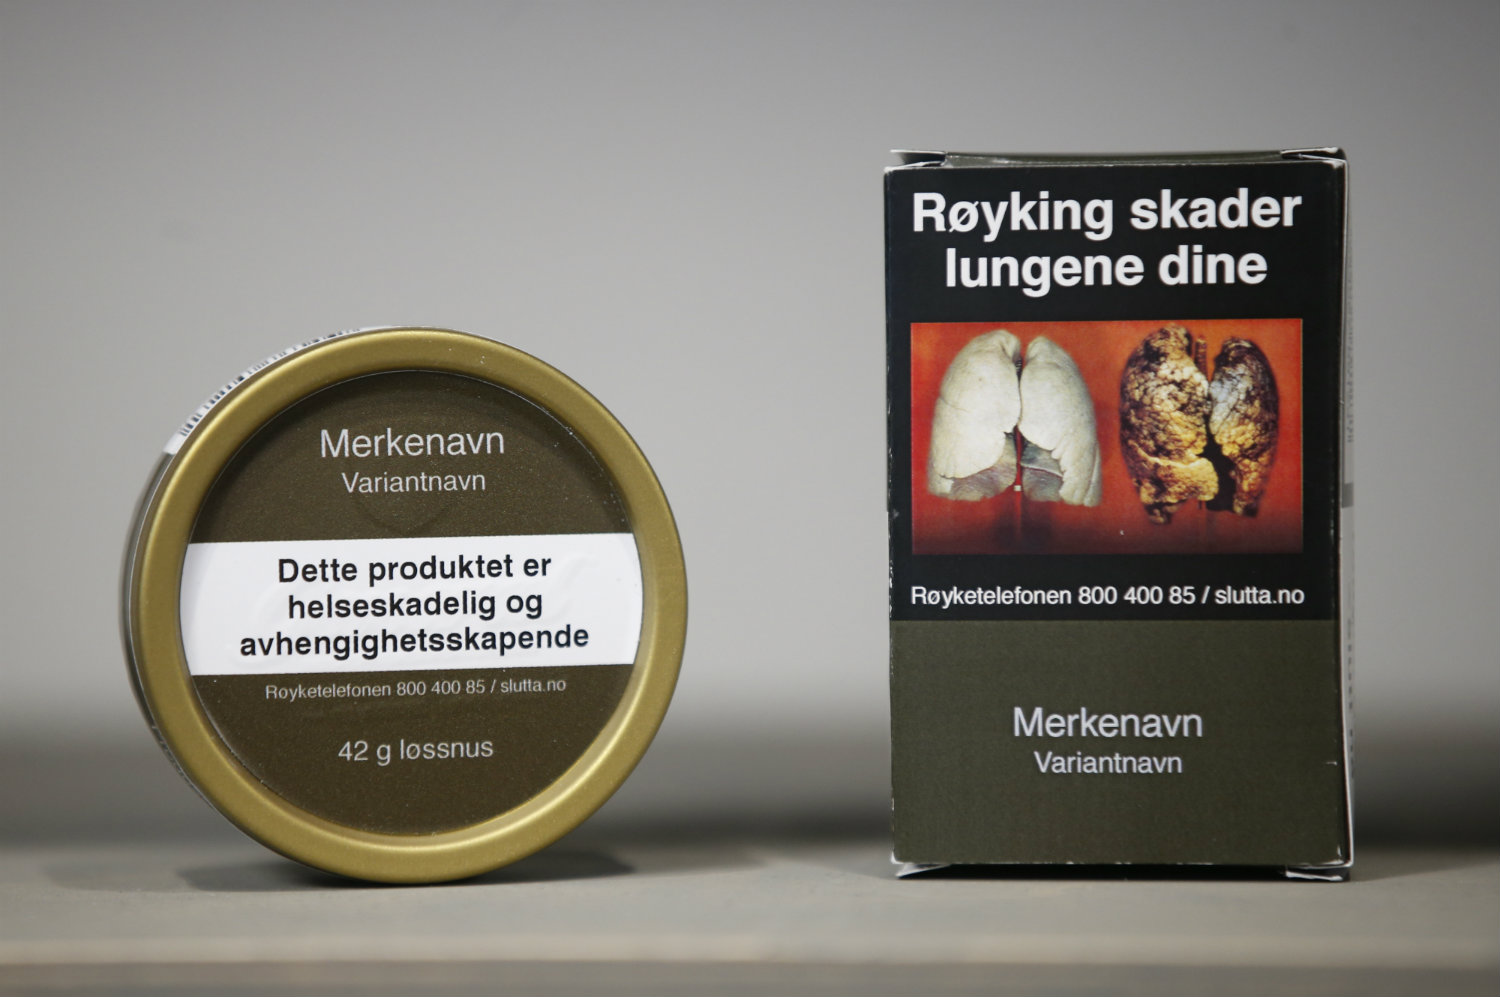 Branded Norwegian cigarettes and snus to be consigned to history